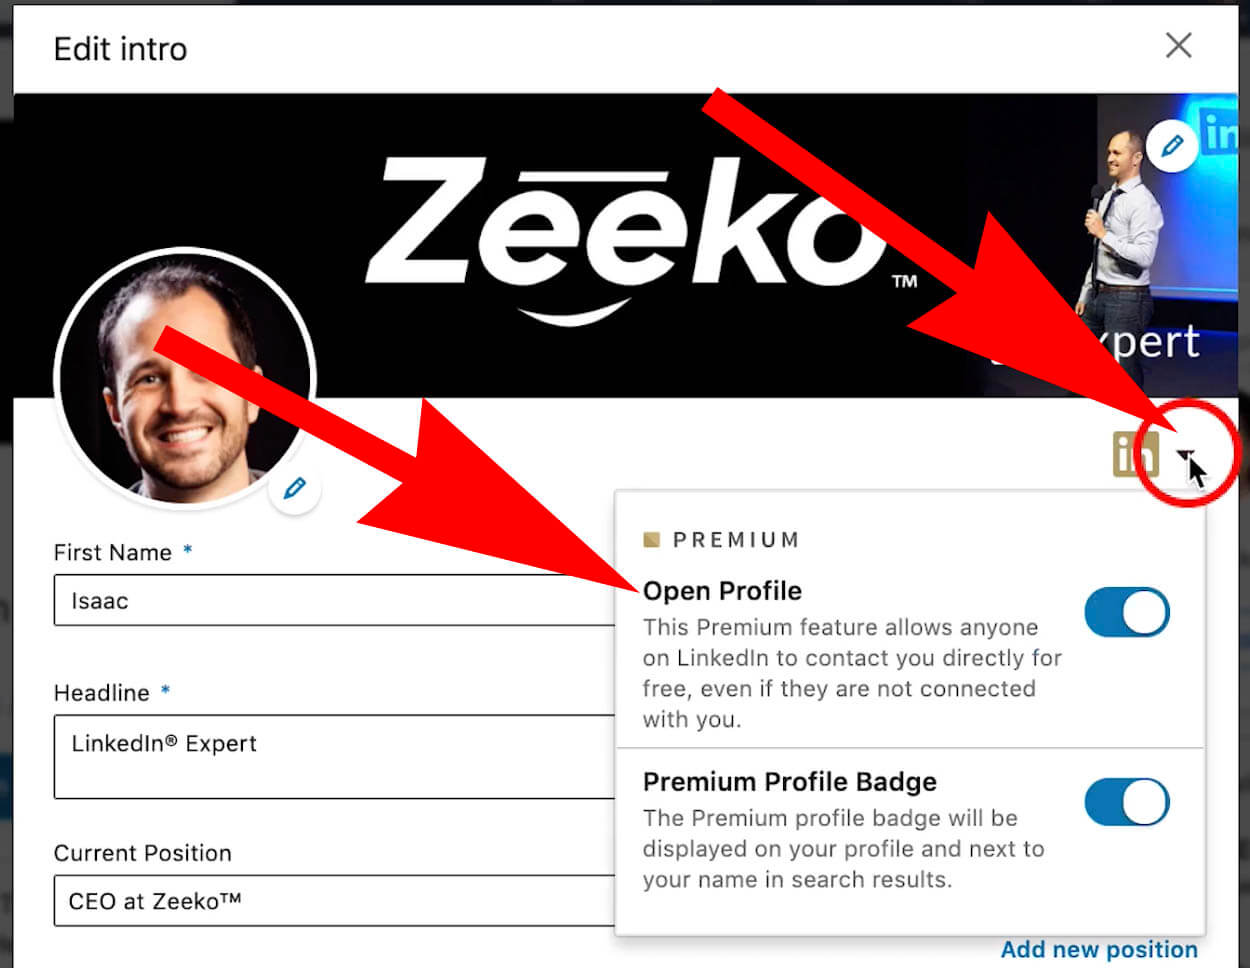 how to enable open profile from your Linkedin profile page